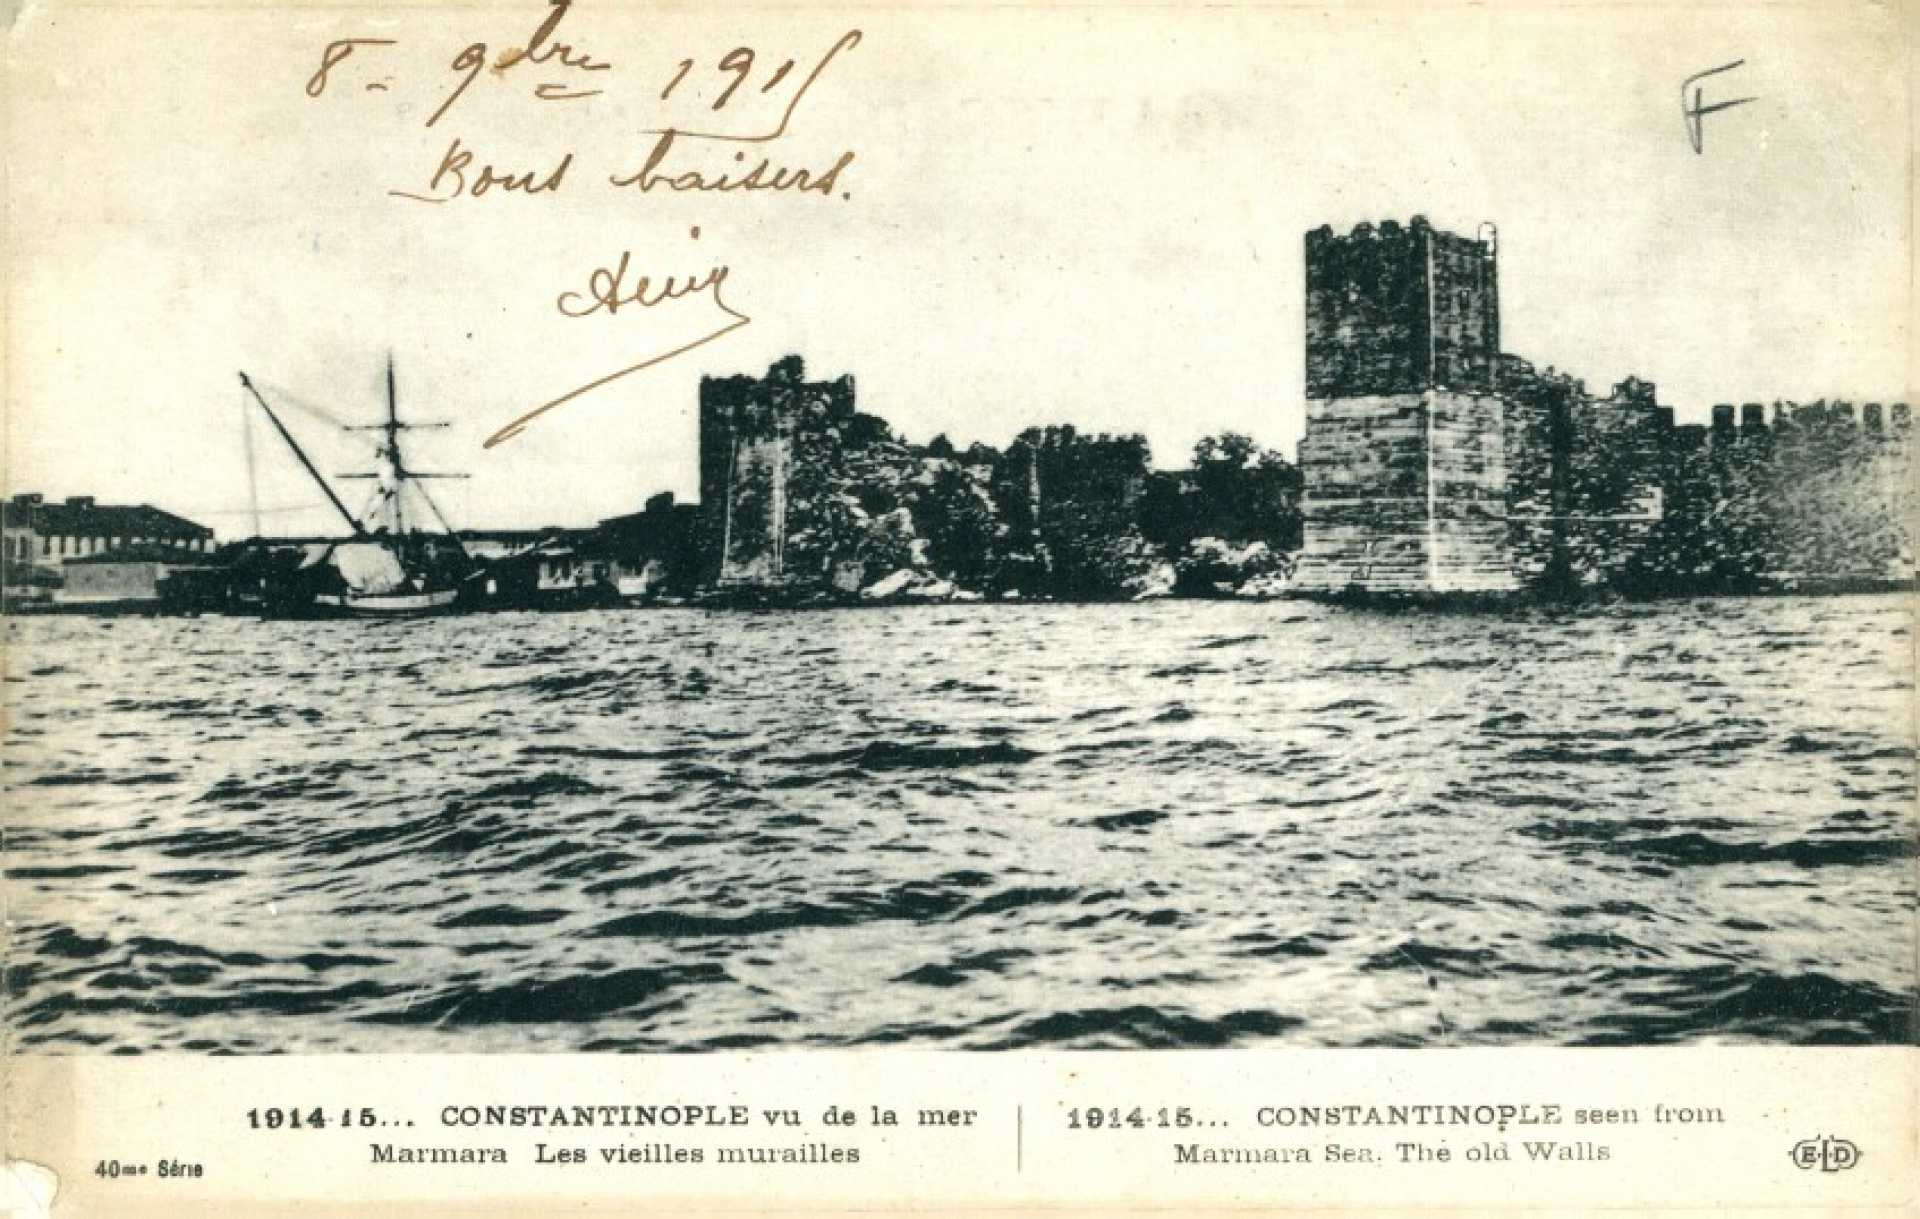 1914-15… Constantinople vu de la mer Marmara Les vielles murailles. 1914-15 Constantinople seen from Marmara Sea. the old Walls